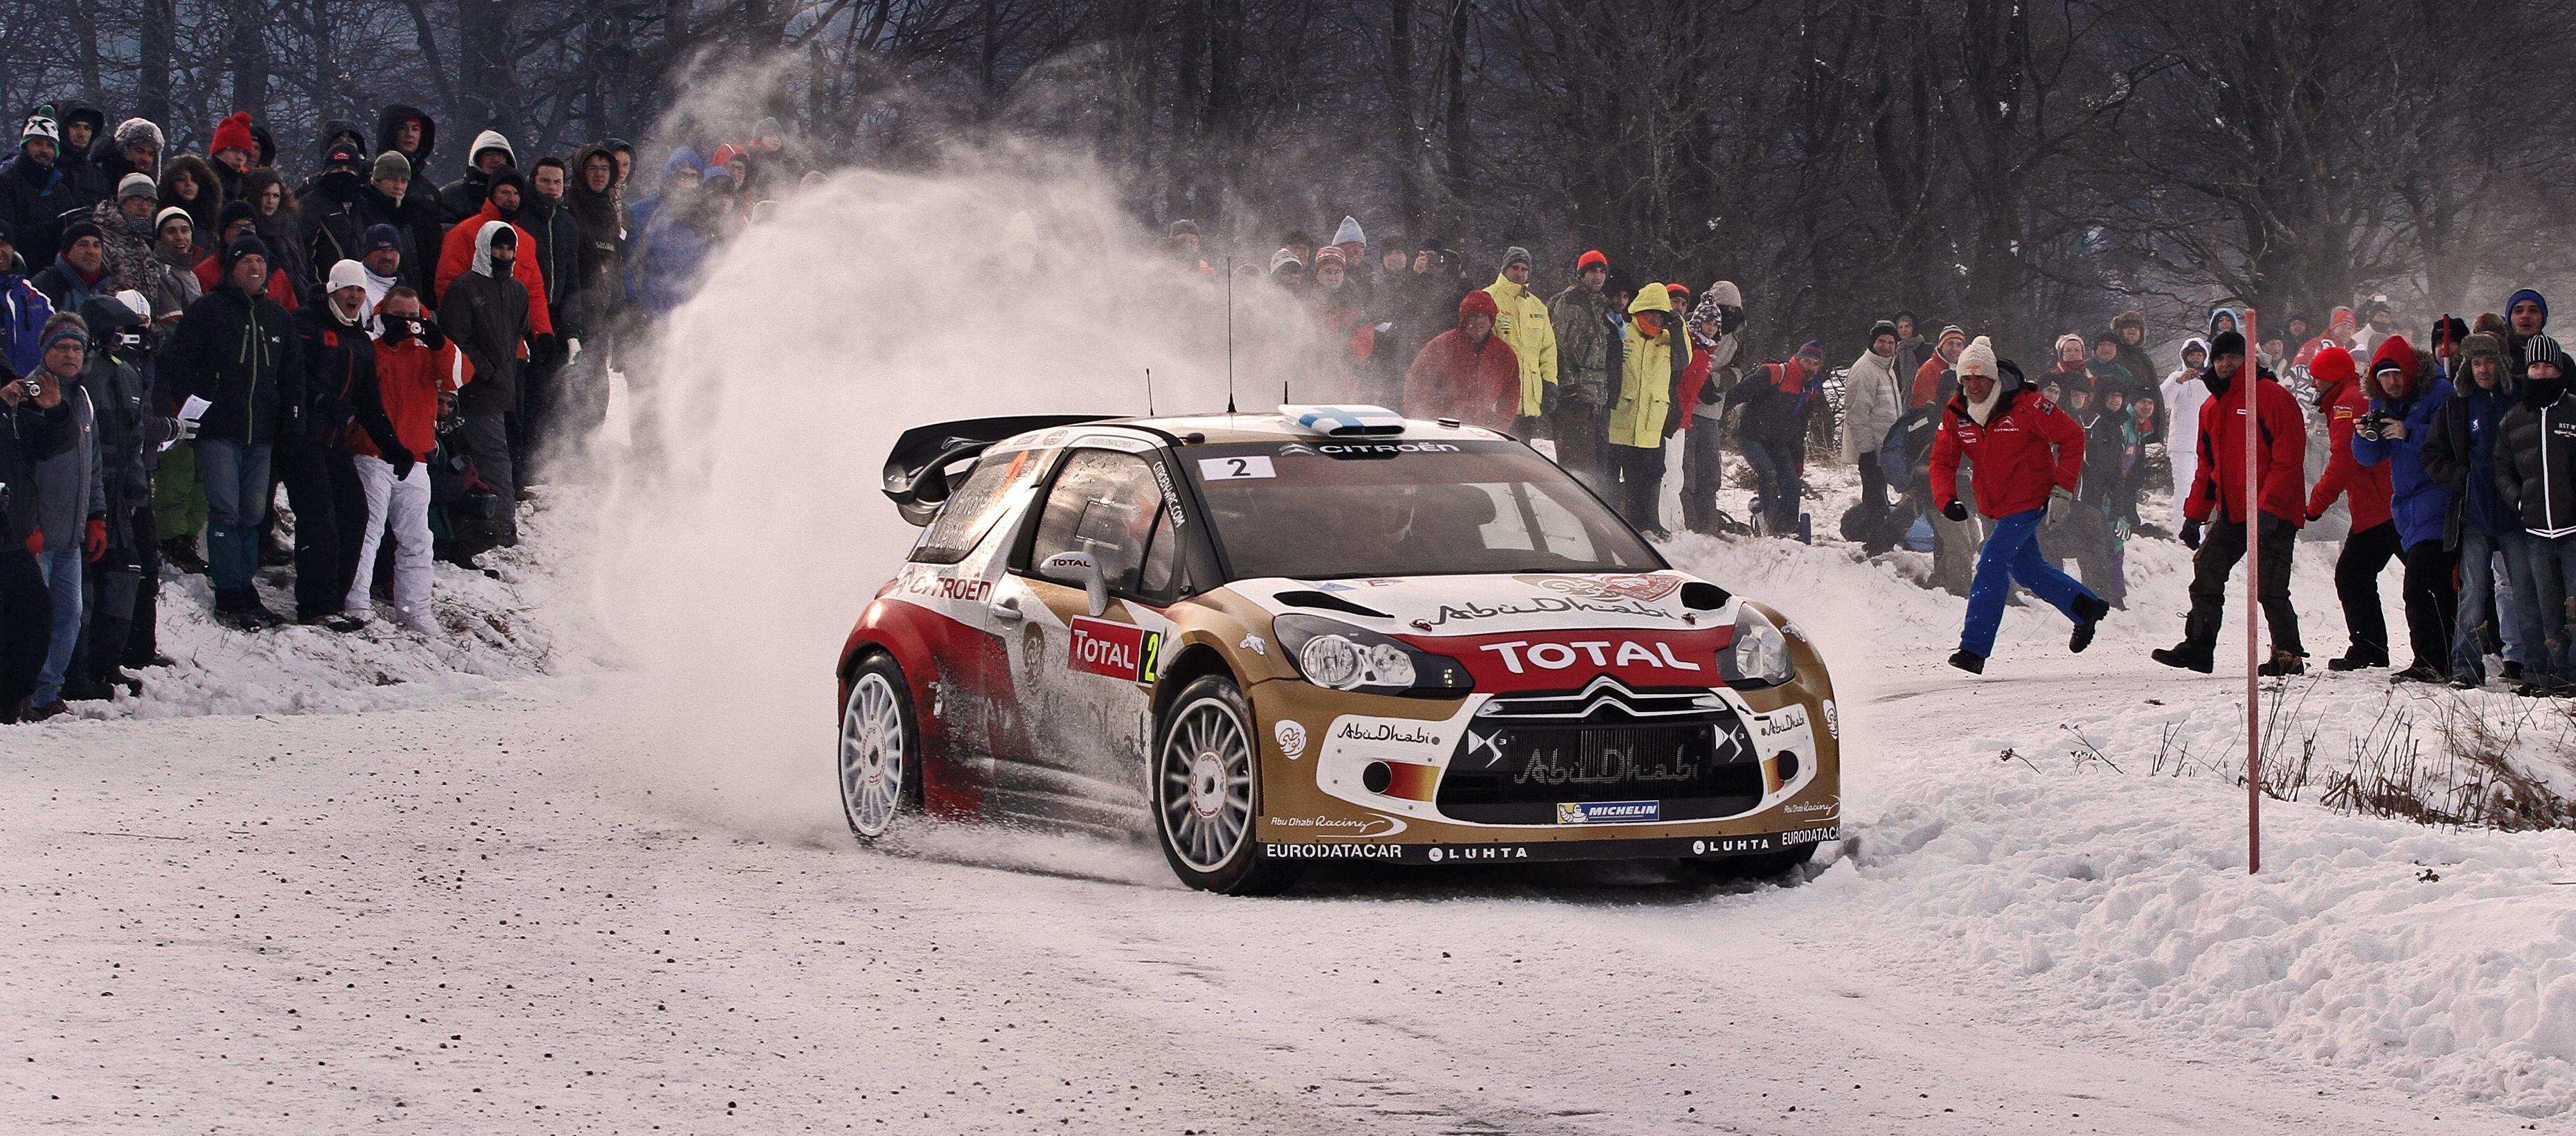 WORLD RALLY CHAMPIONSHIP 2013 – RALLYE MONTE-CARLO